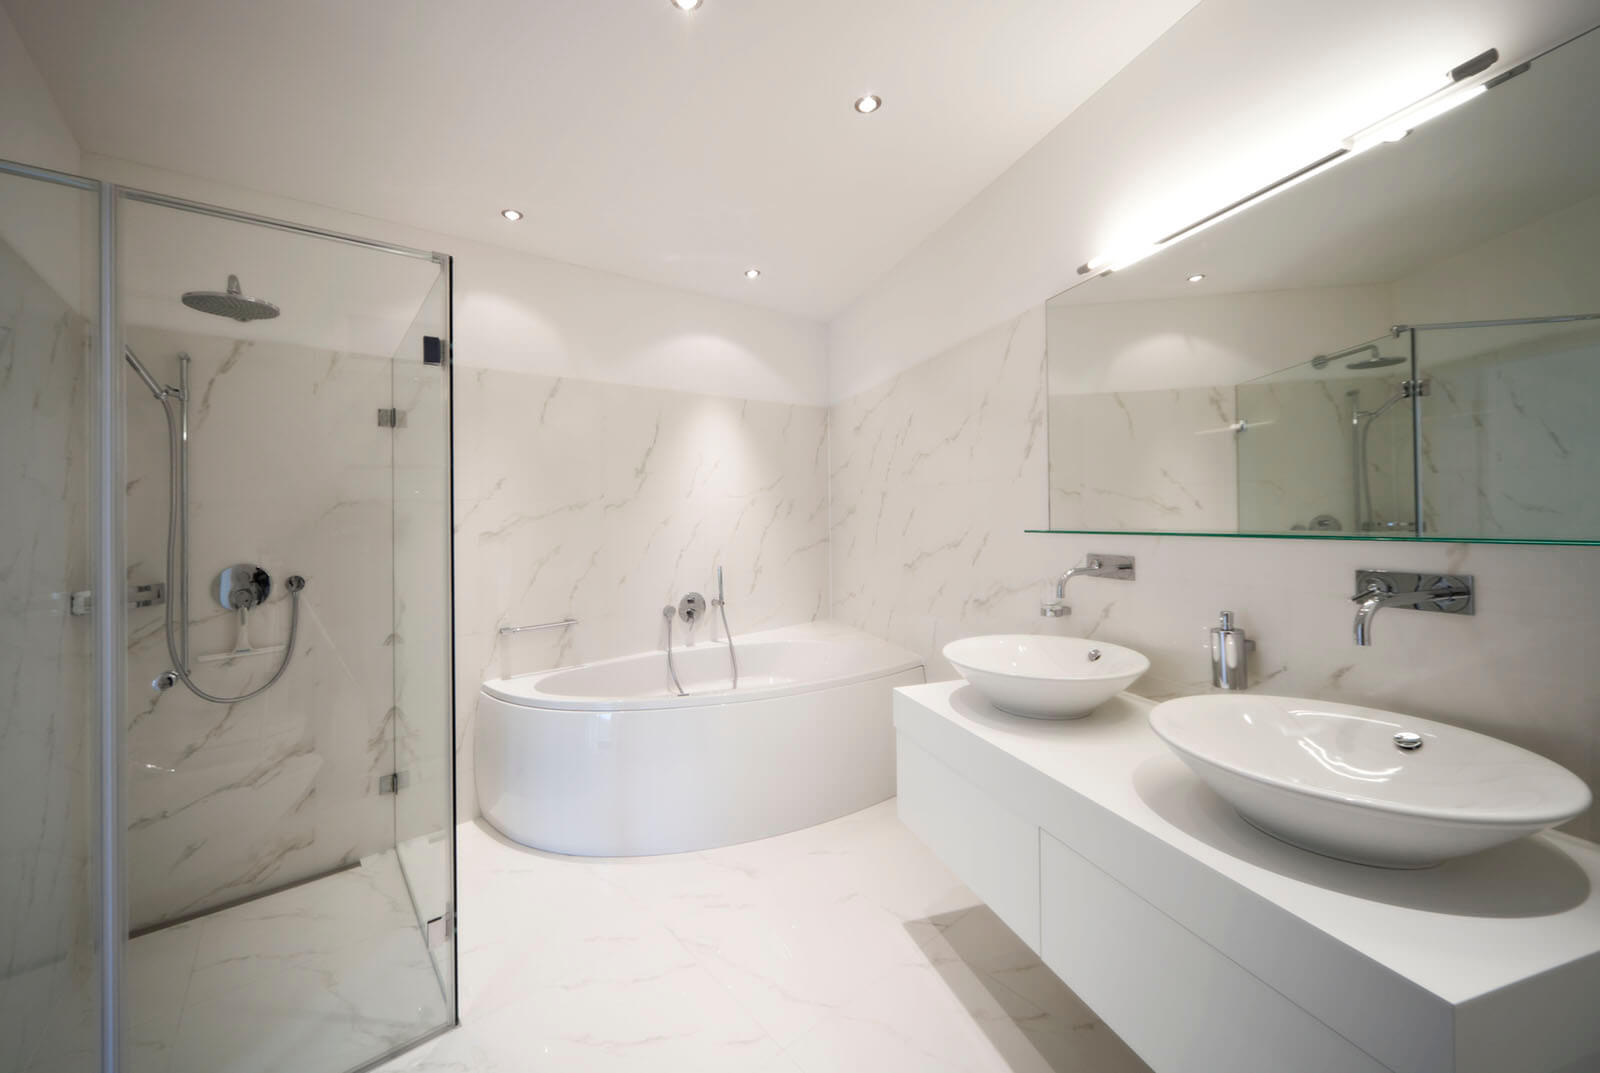 Balencing the budget with bathroom building